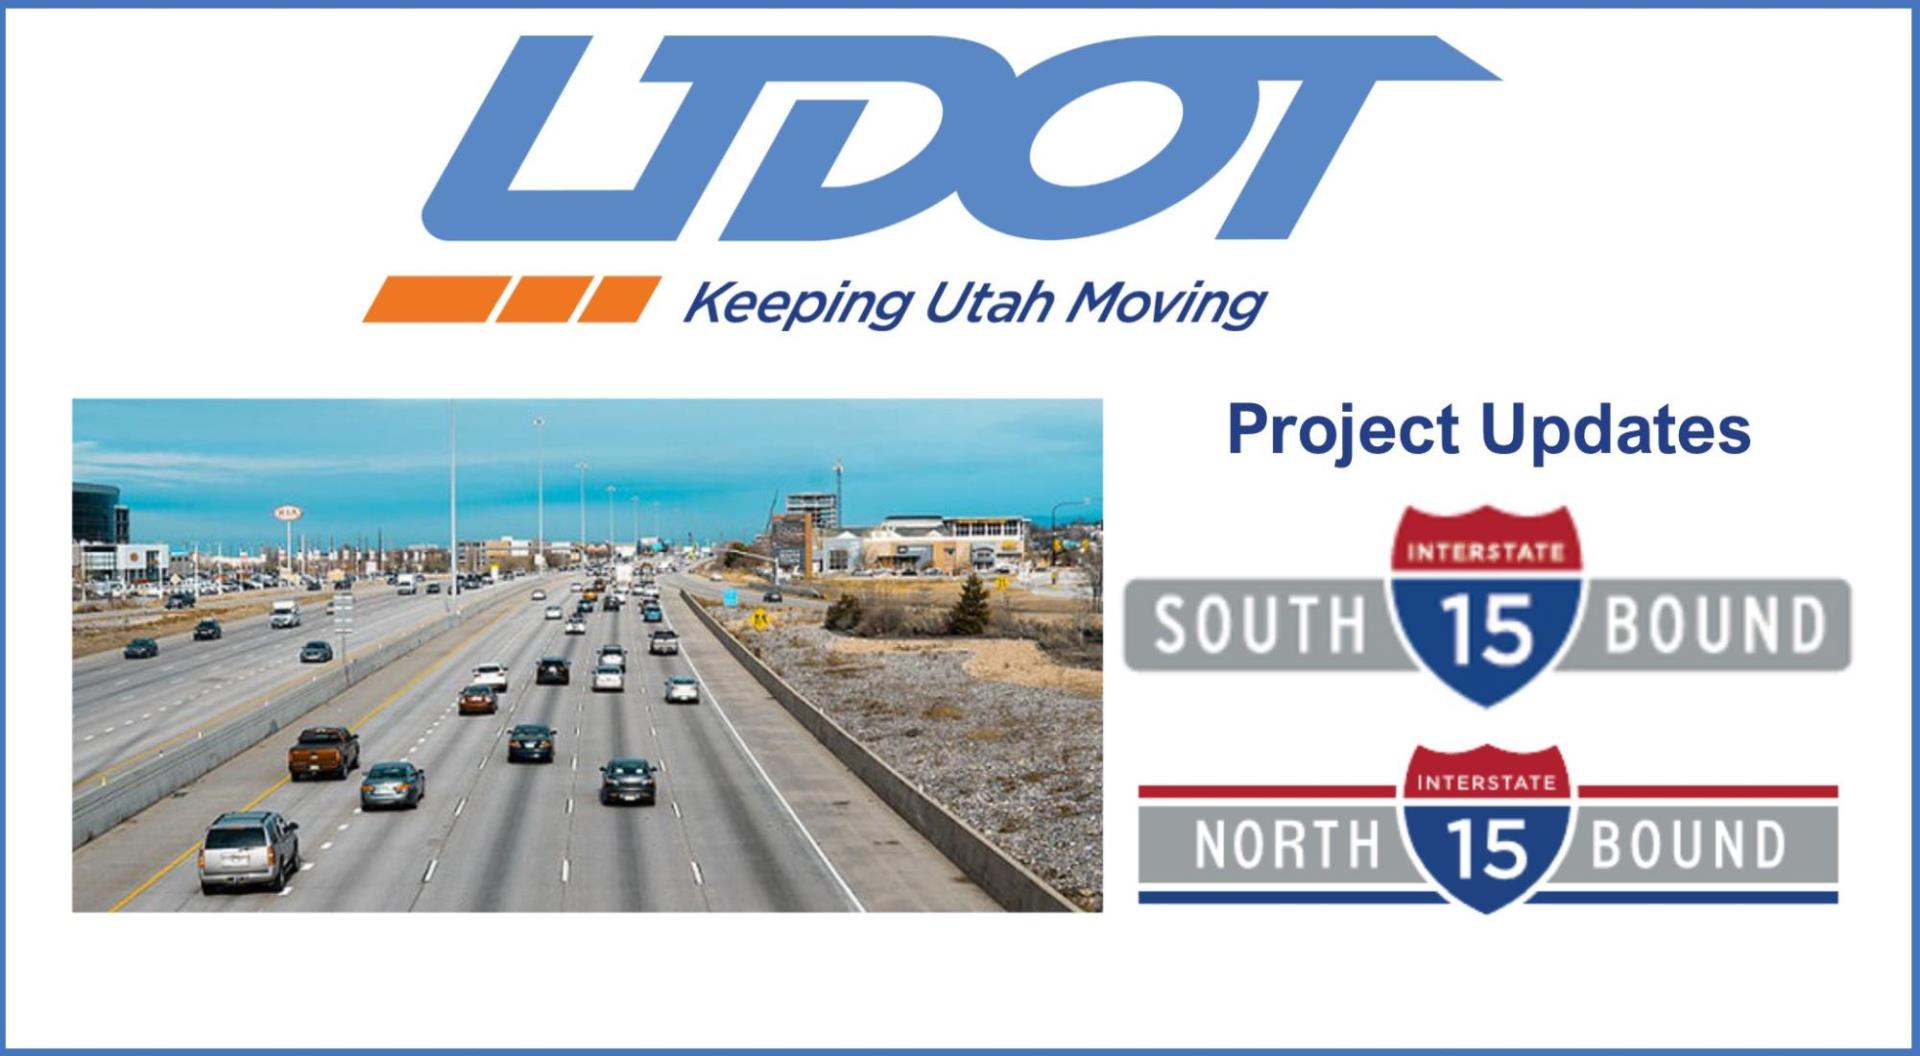 Photo of I 15 freeway and logos